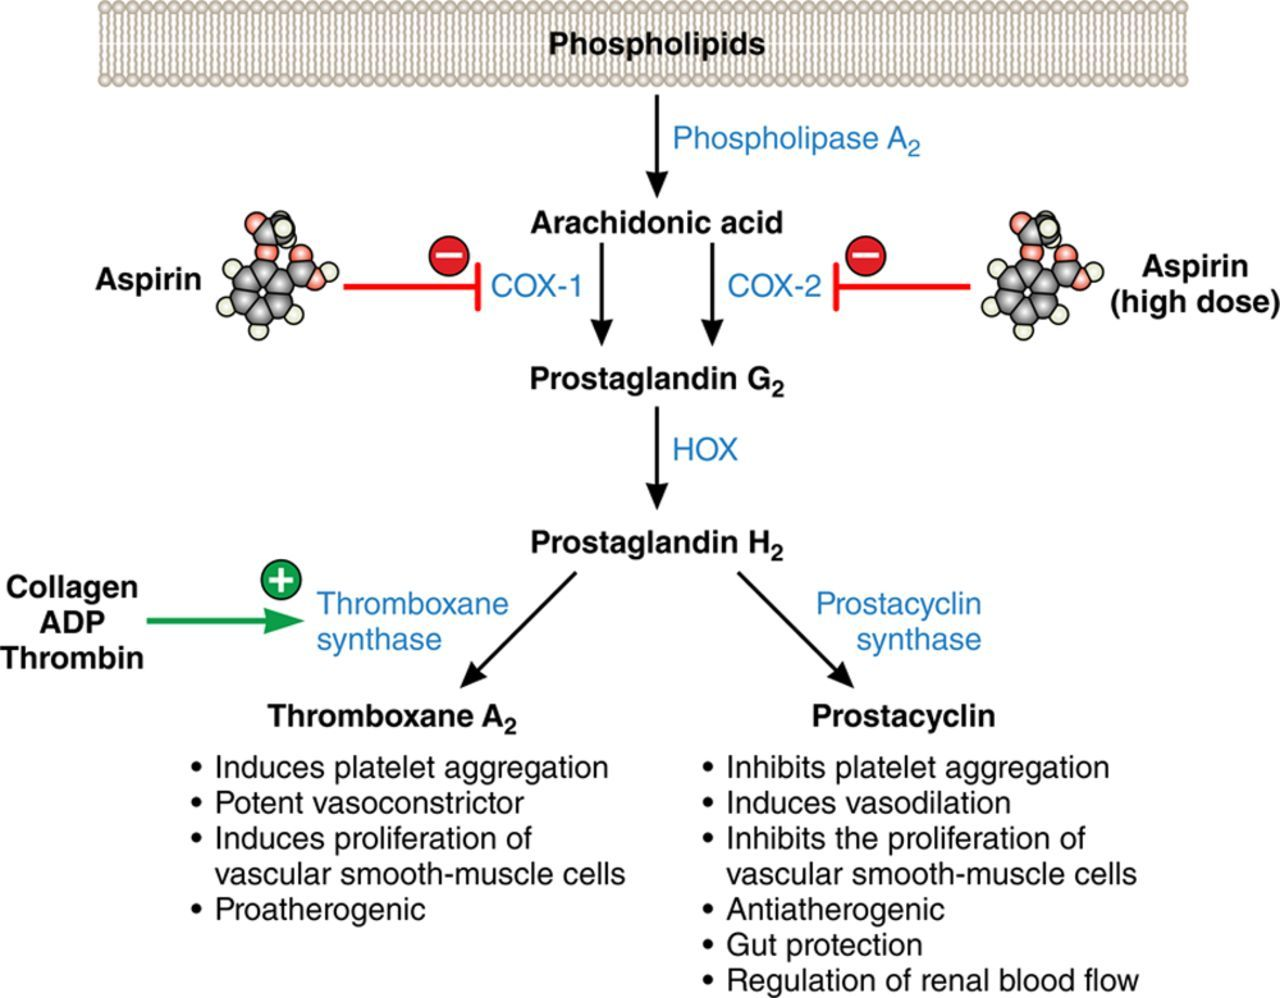 hight resolution of image result for aspirin mechanism of action pharmacology pharmacy line chart ms